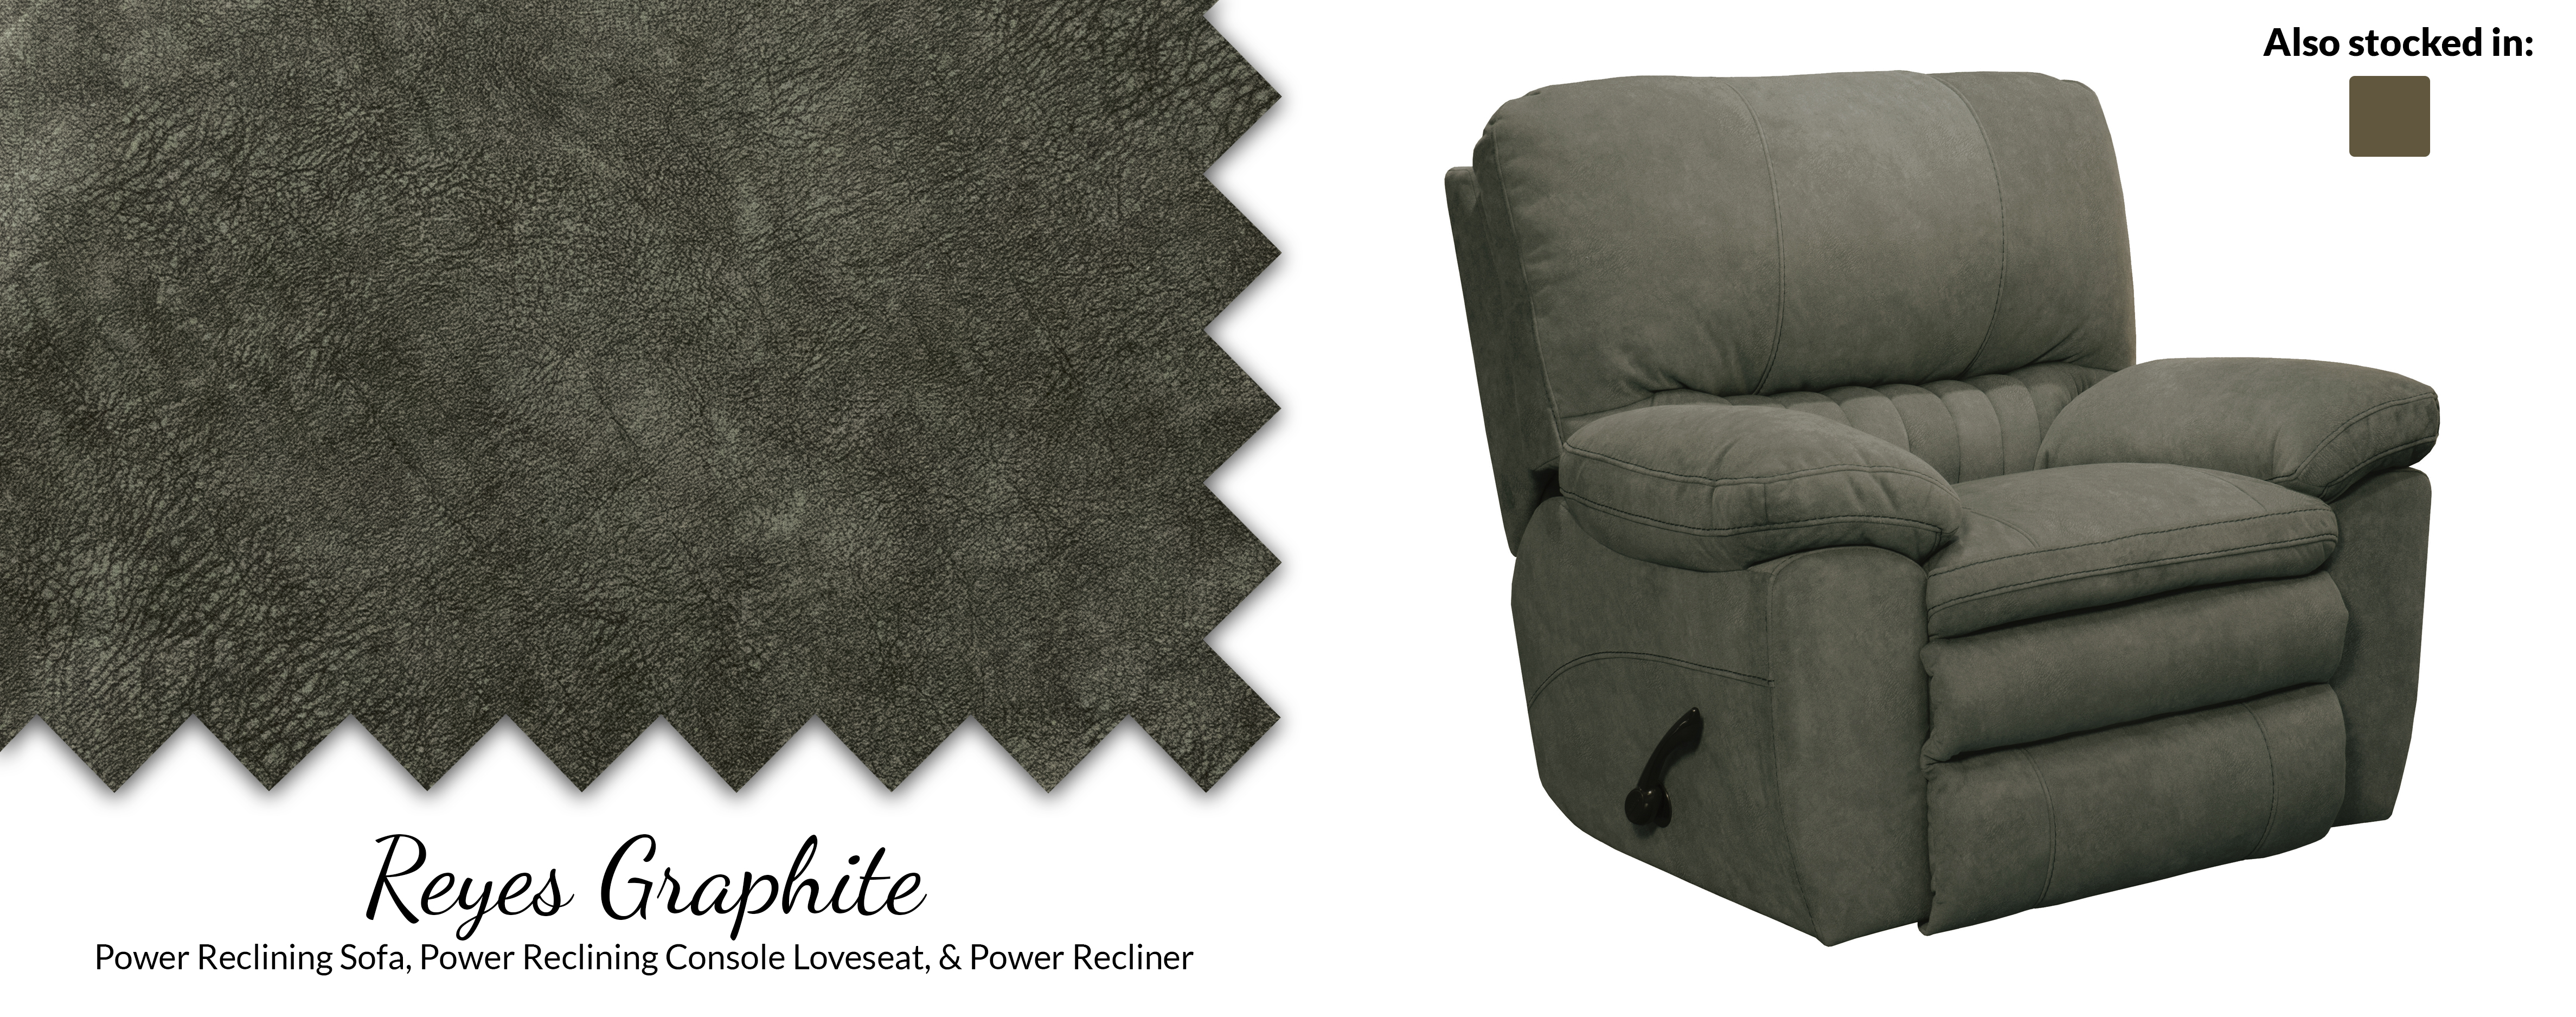 6240 Reyes Power Recliner Awfco Catalog Site